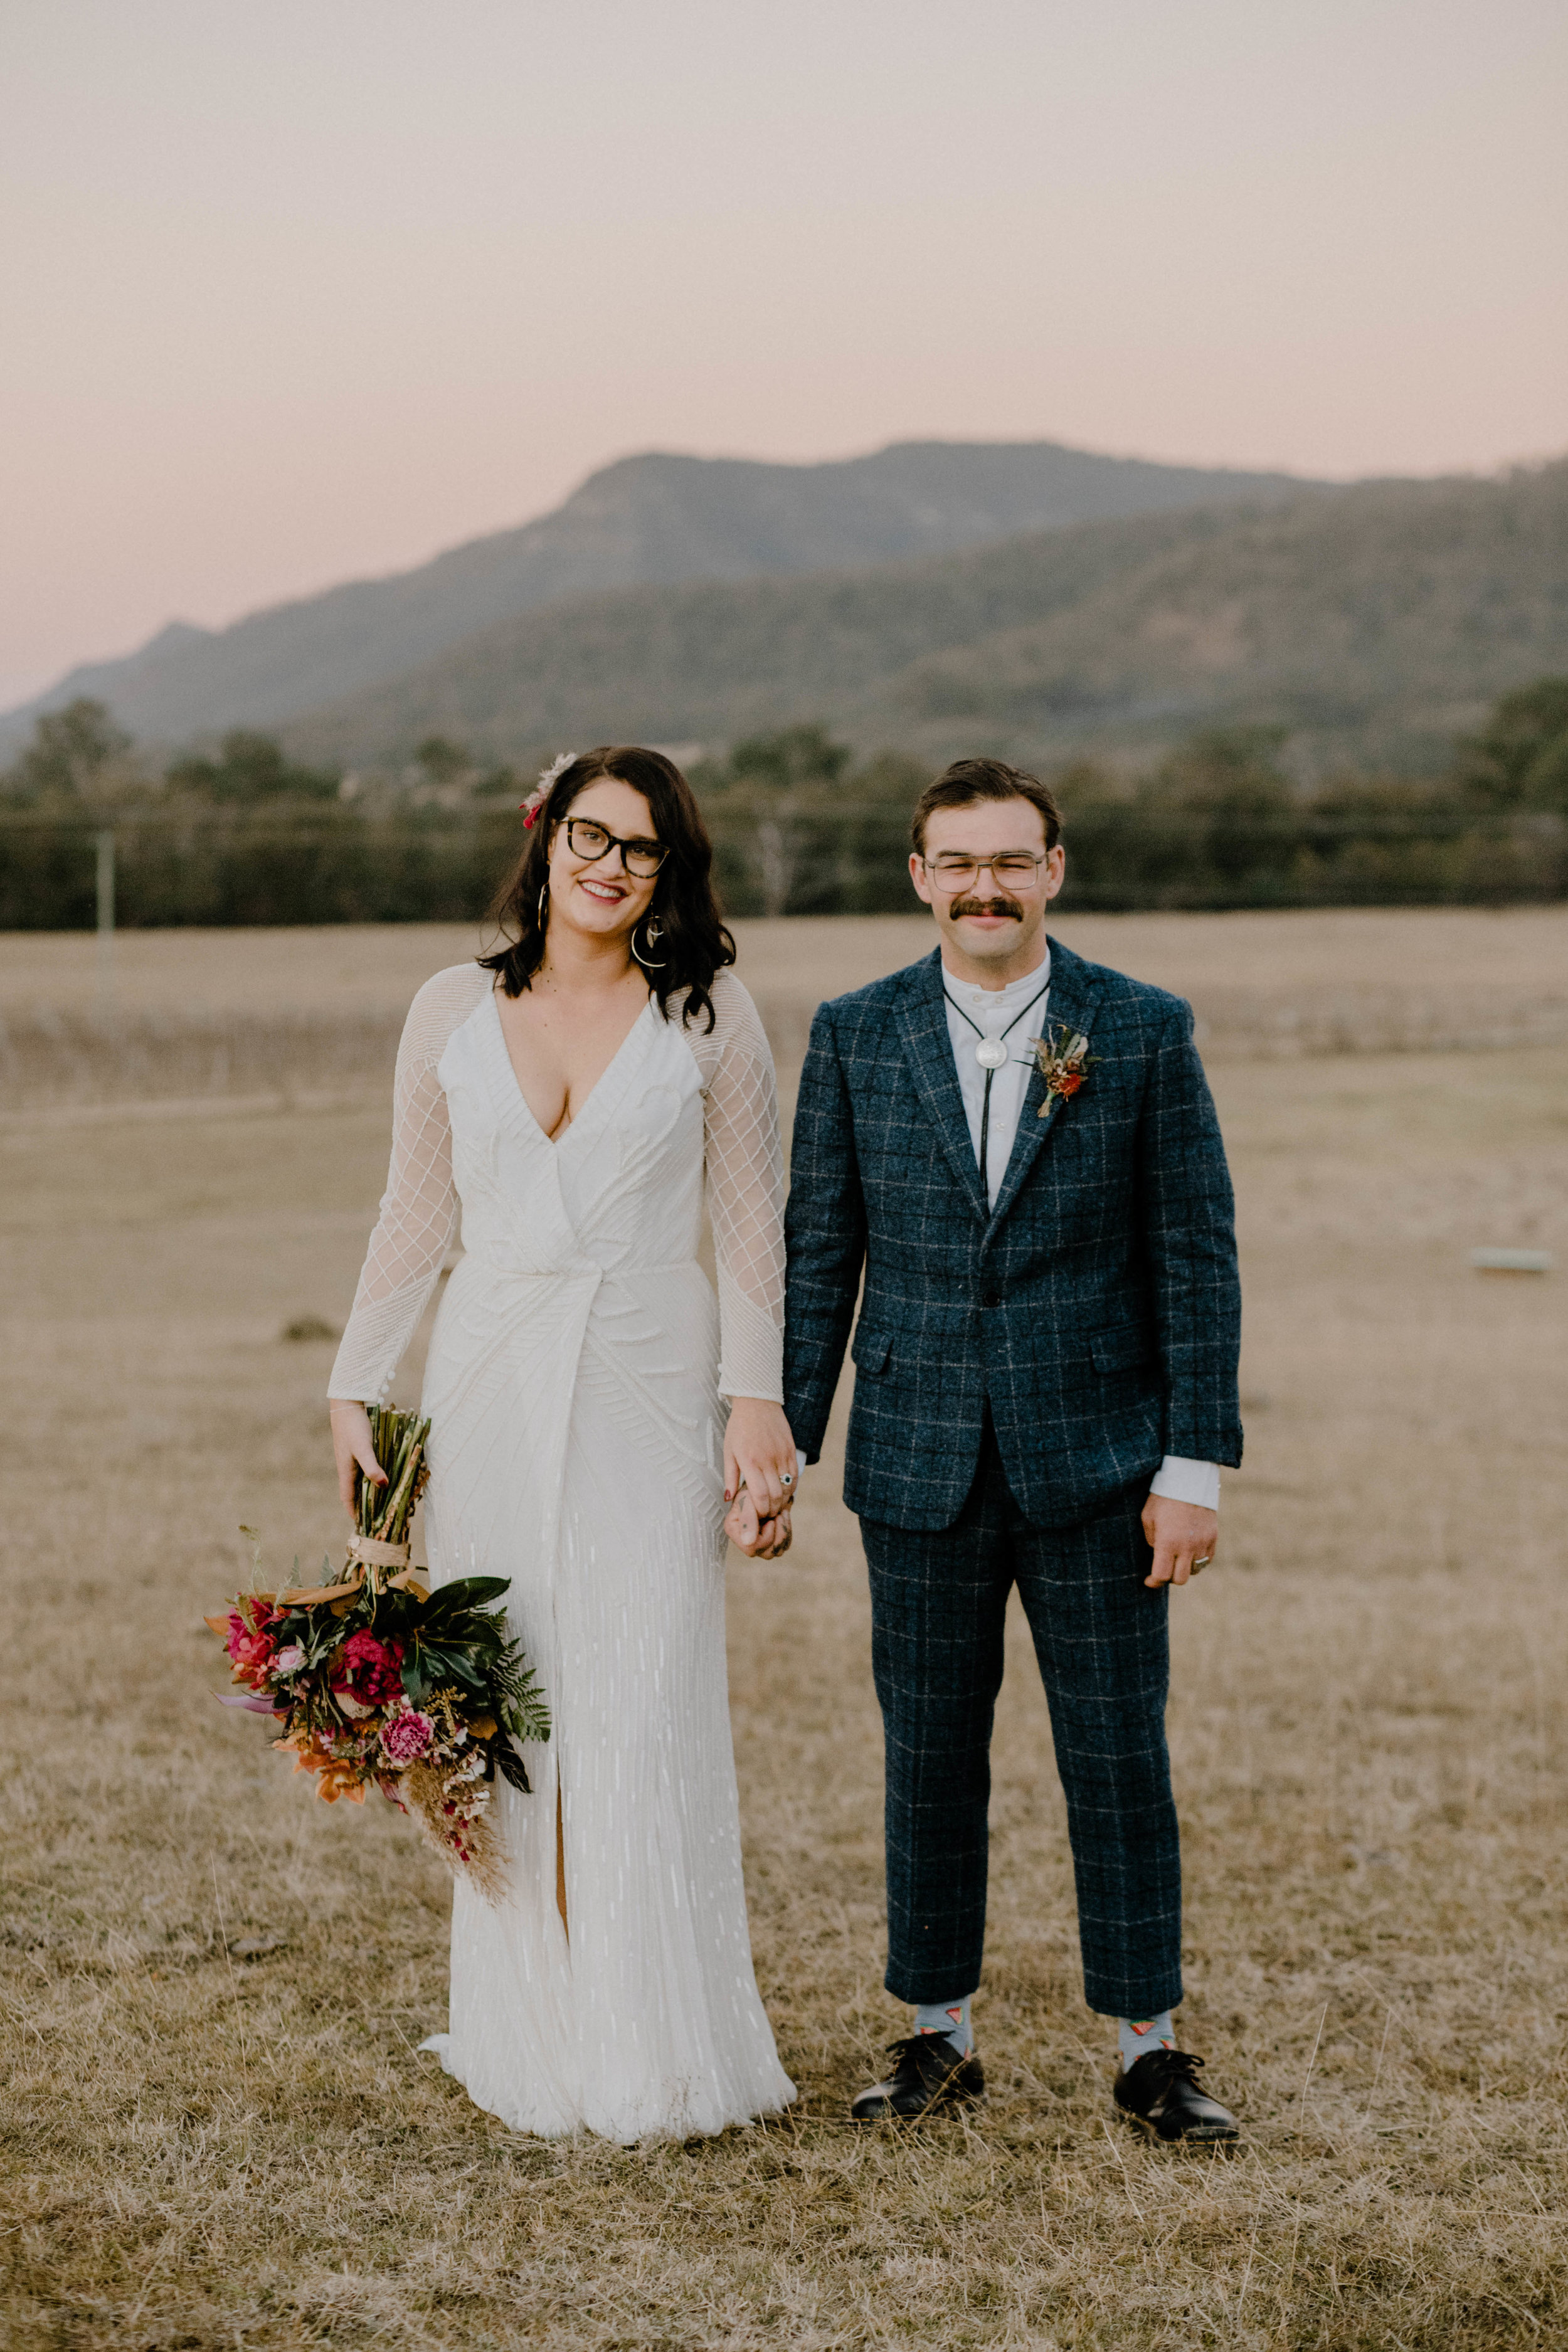 wedding located in hunter valley newcastle area by samuel jacob wedding photographer in sydney